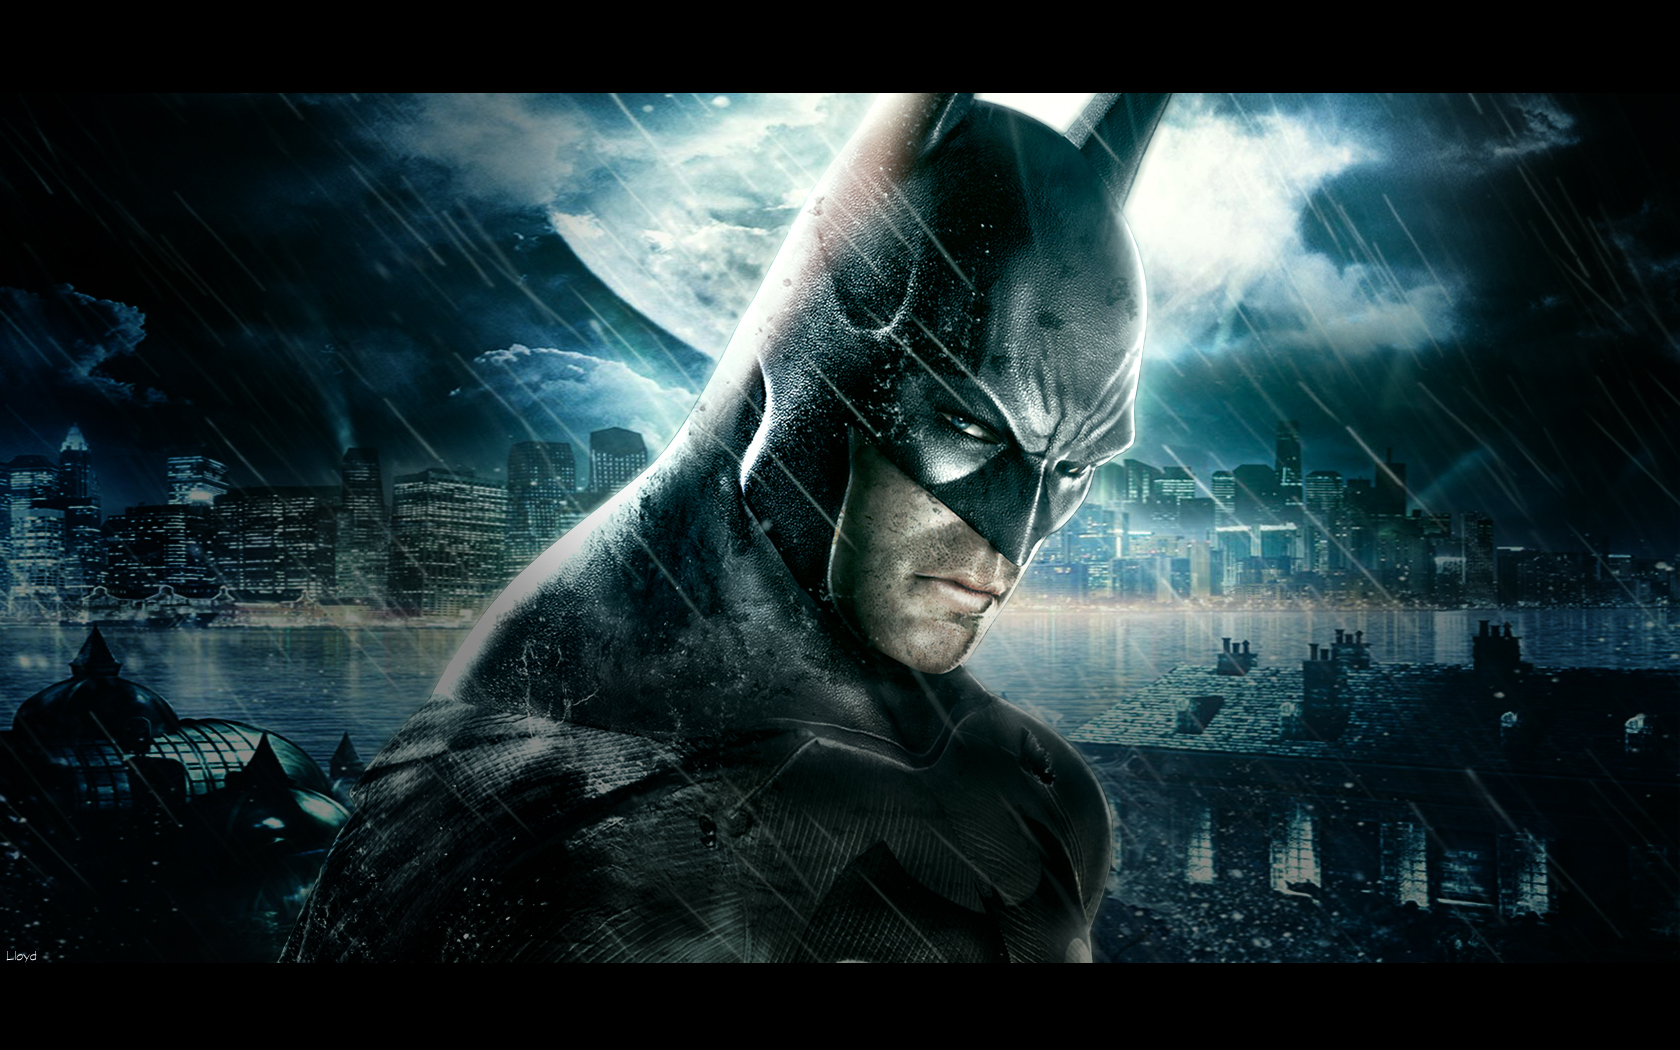 batman arkham asylum images batman arkham asylum hd wallpaper and